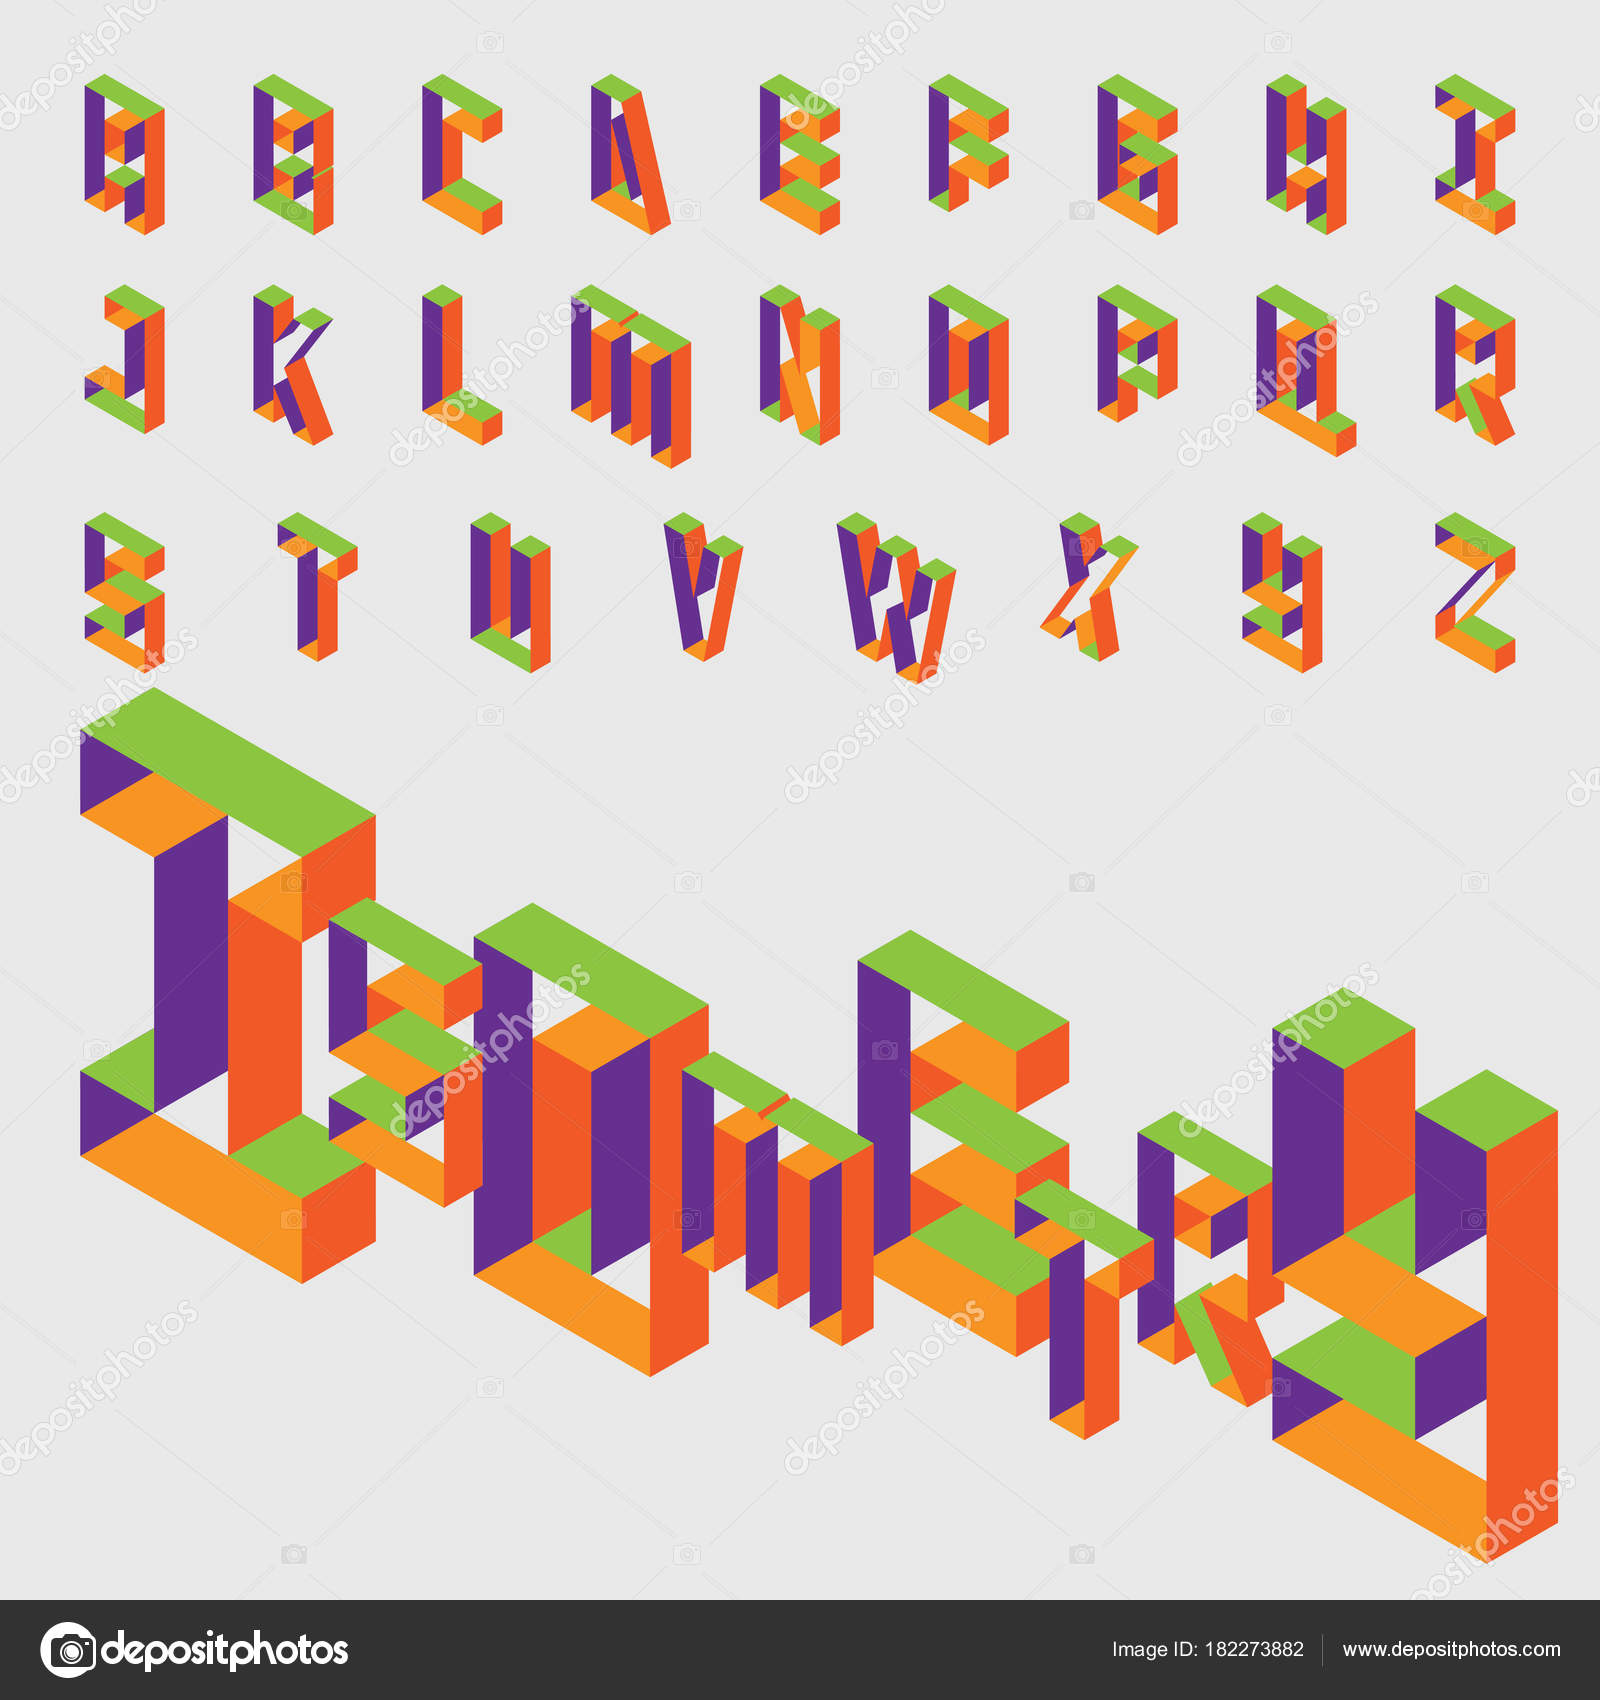 Isometric Hollow Letters In Bright Colors Vector Collection For